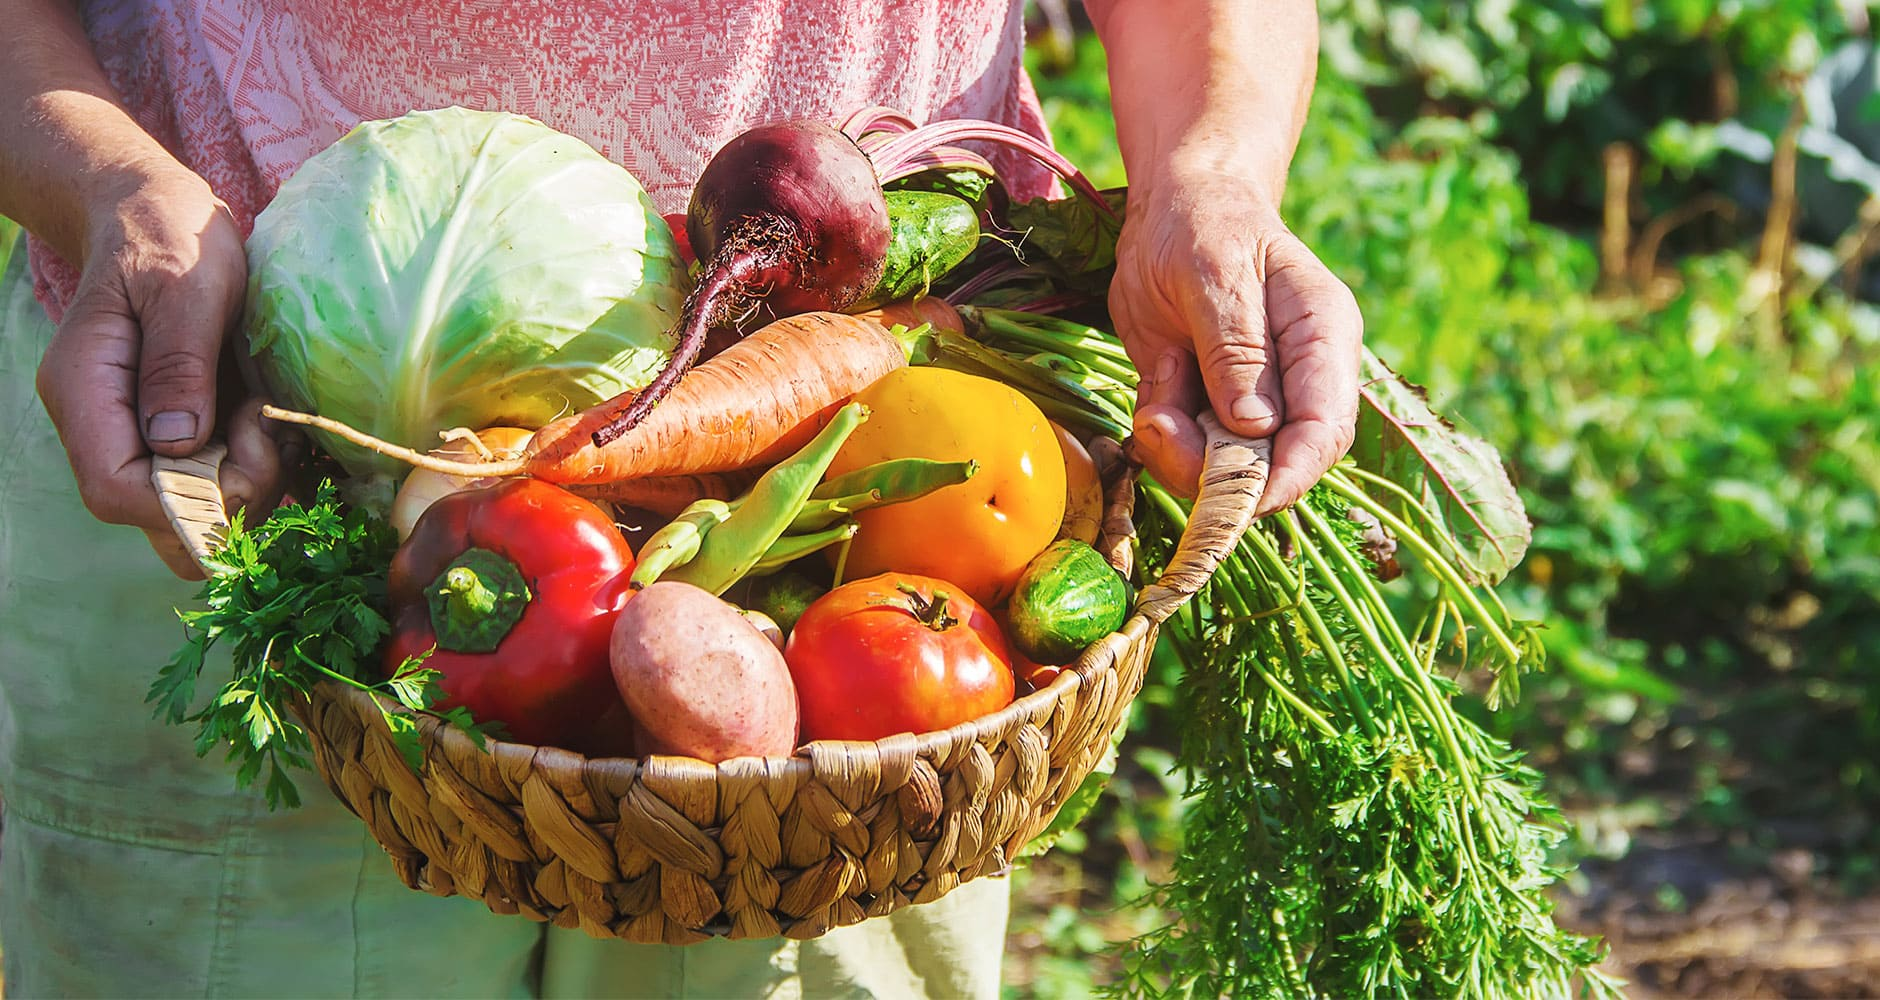 Know When To Harvest These 6 Vegetables - Farmers' Almanac